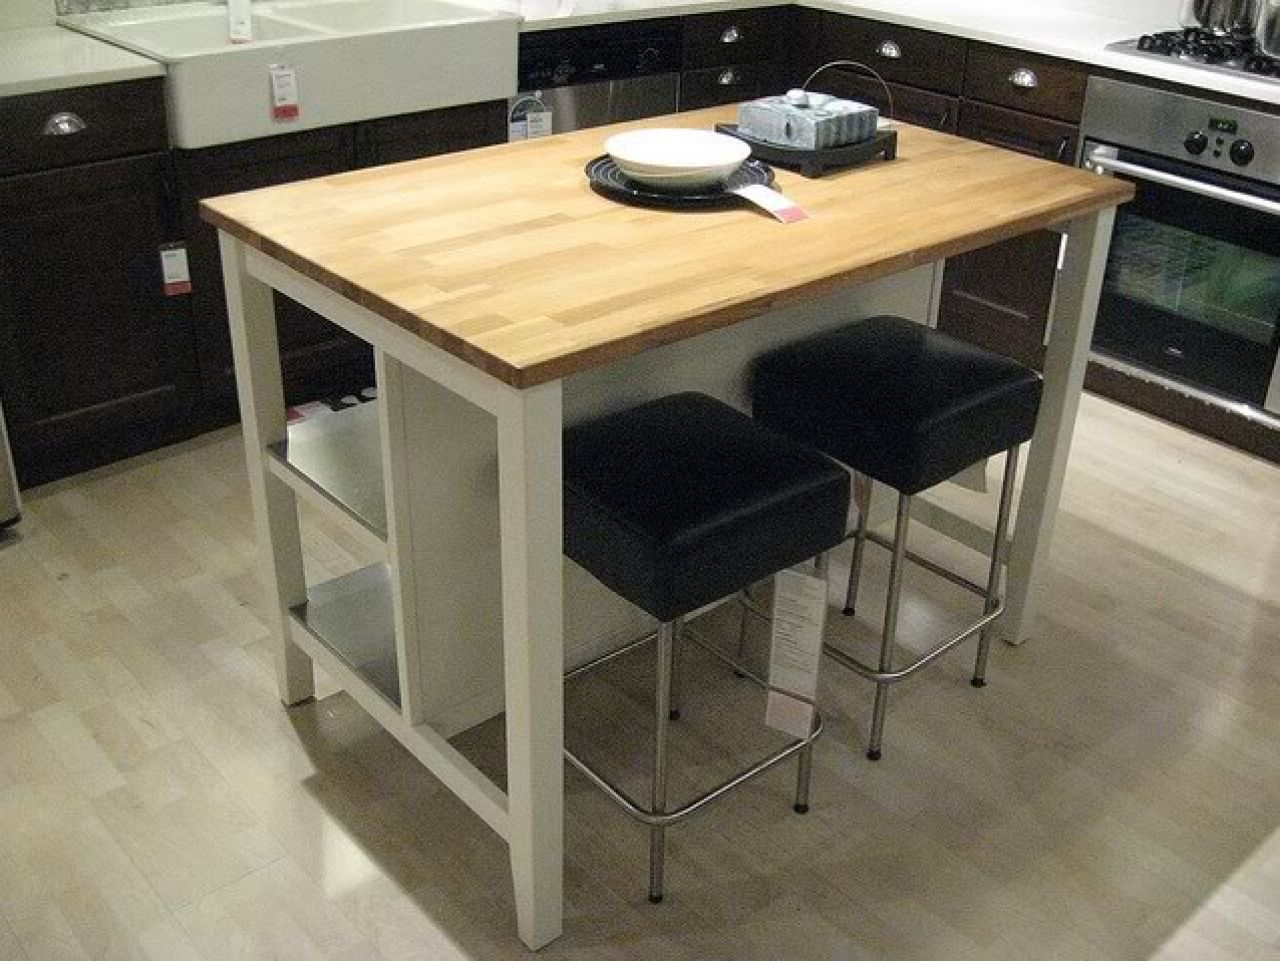 Best Island For Kitchen Ikea Mdfyw Com Home Projects 640 x 480